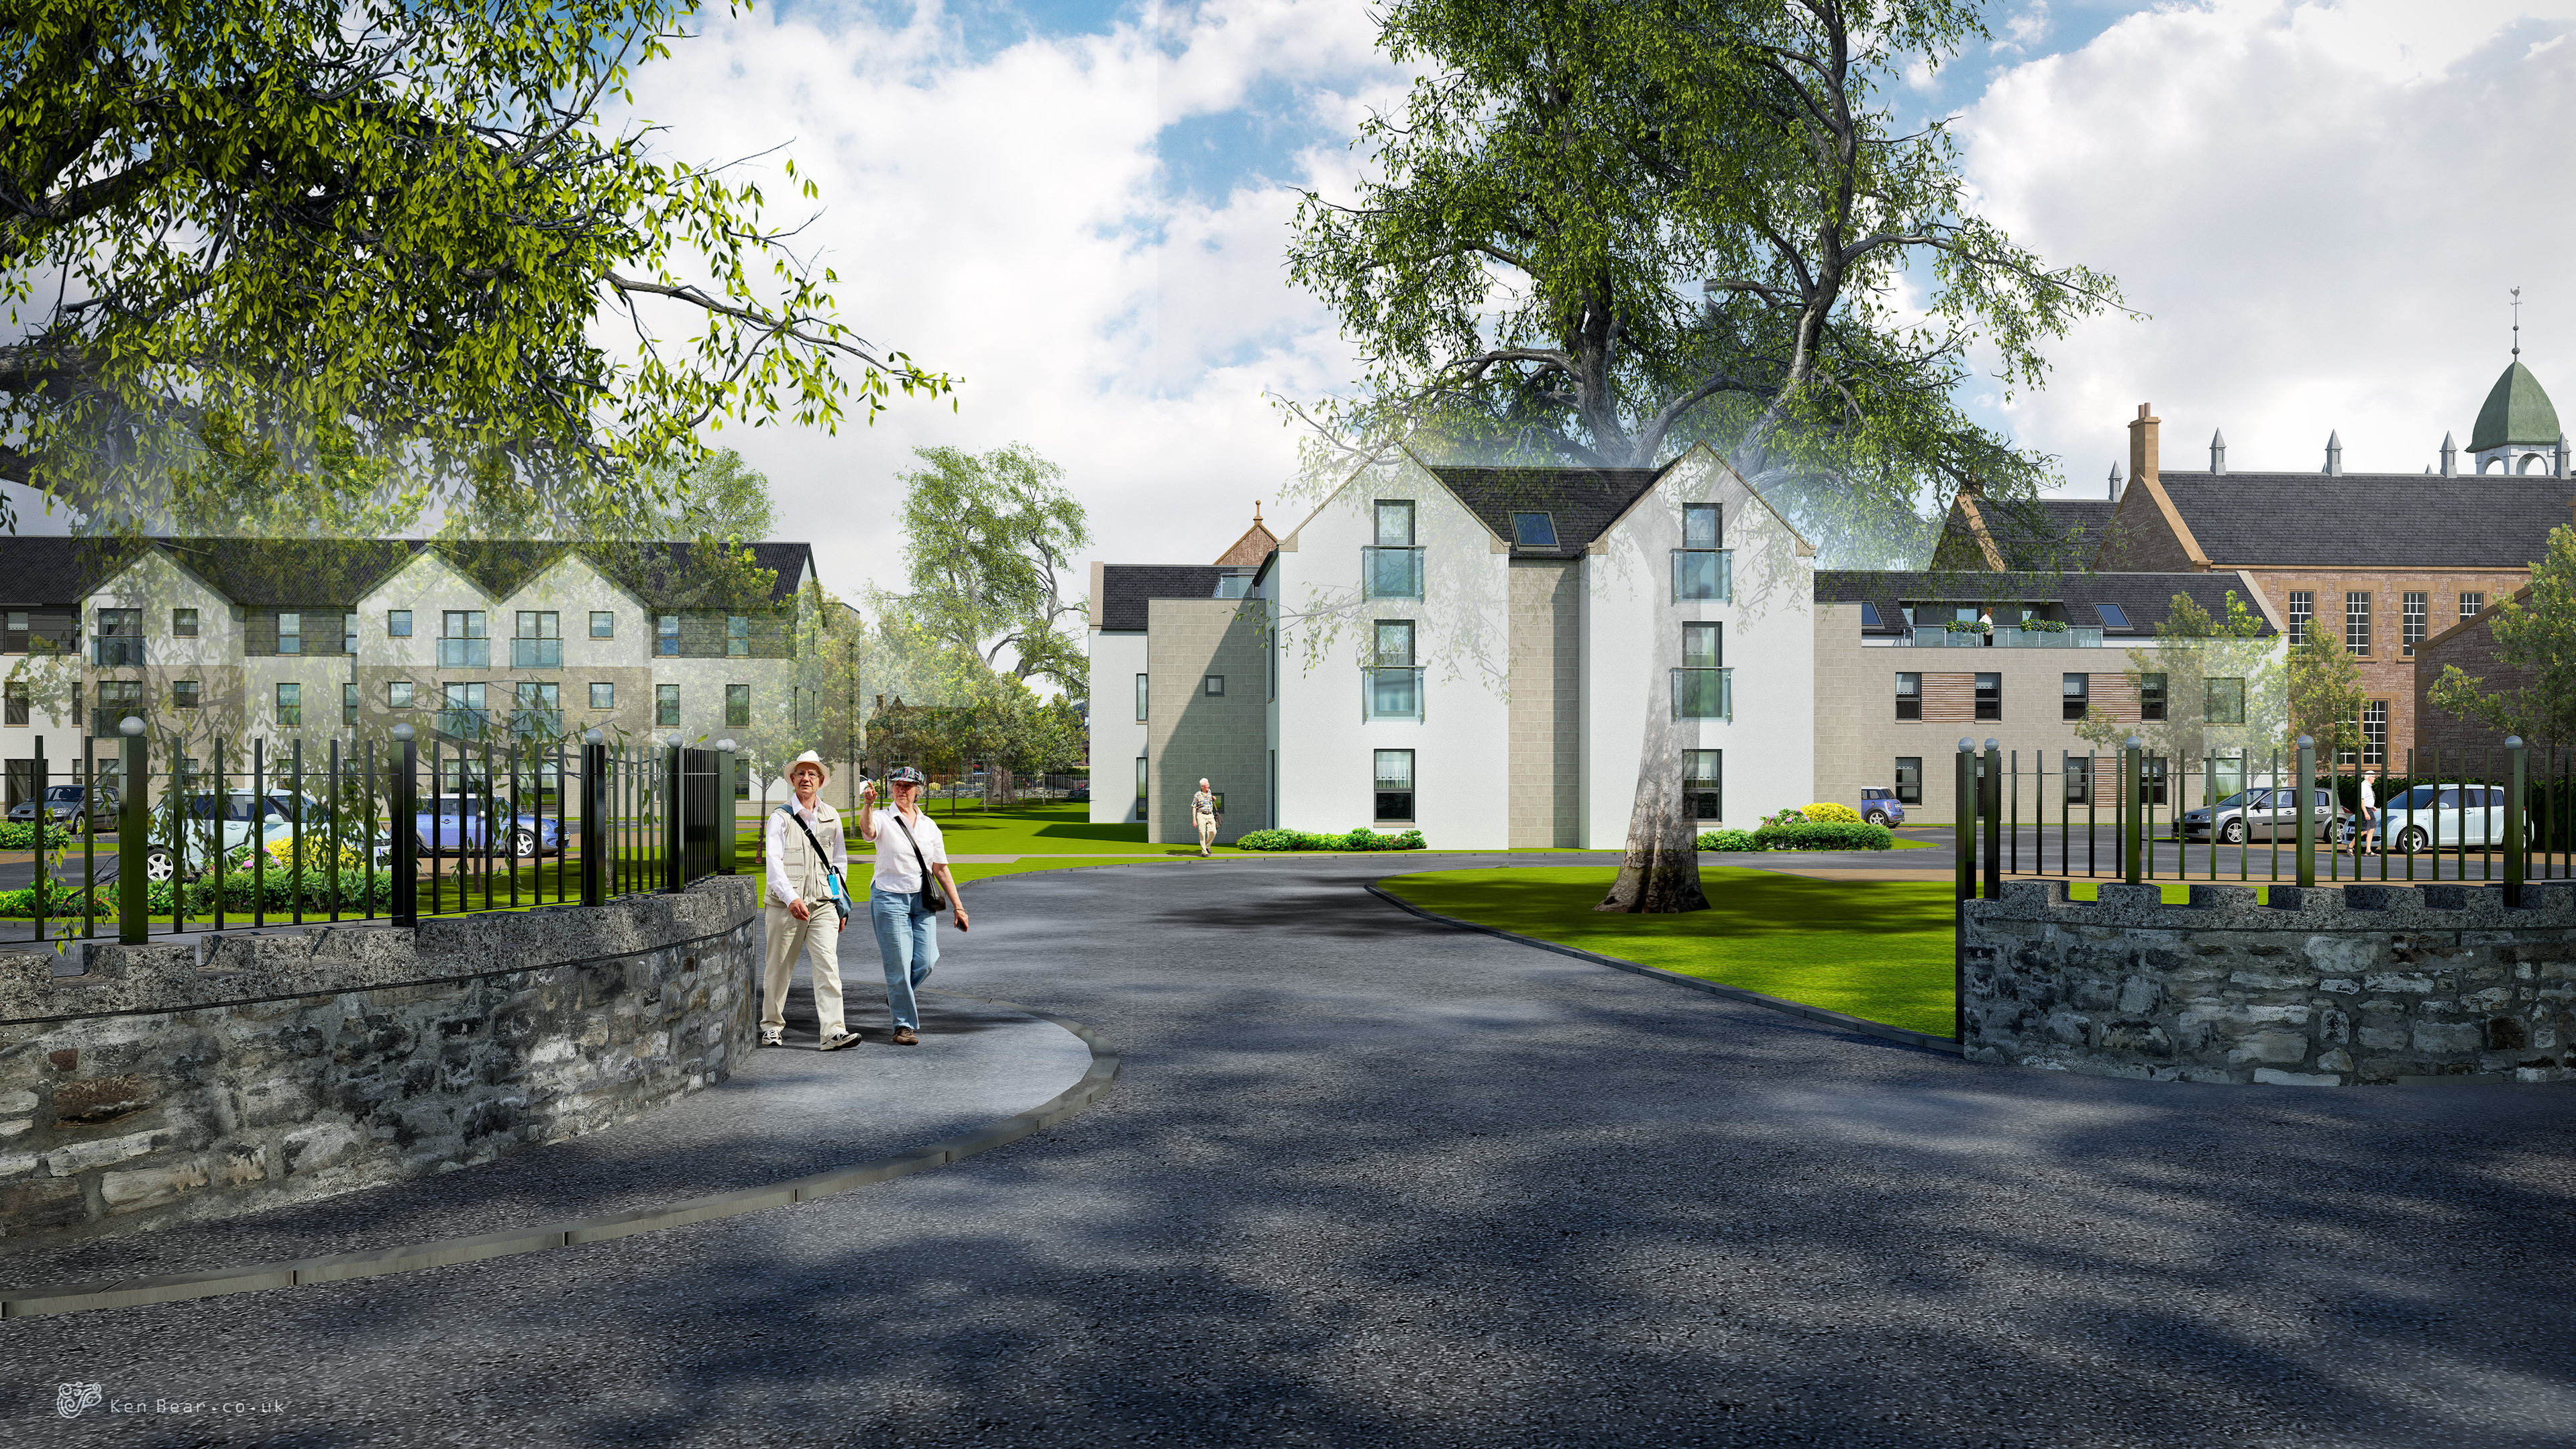 An artist's impression of the new look Midmills building.